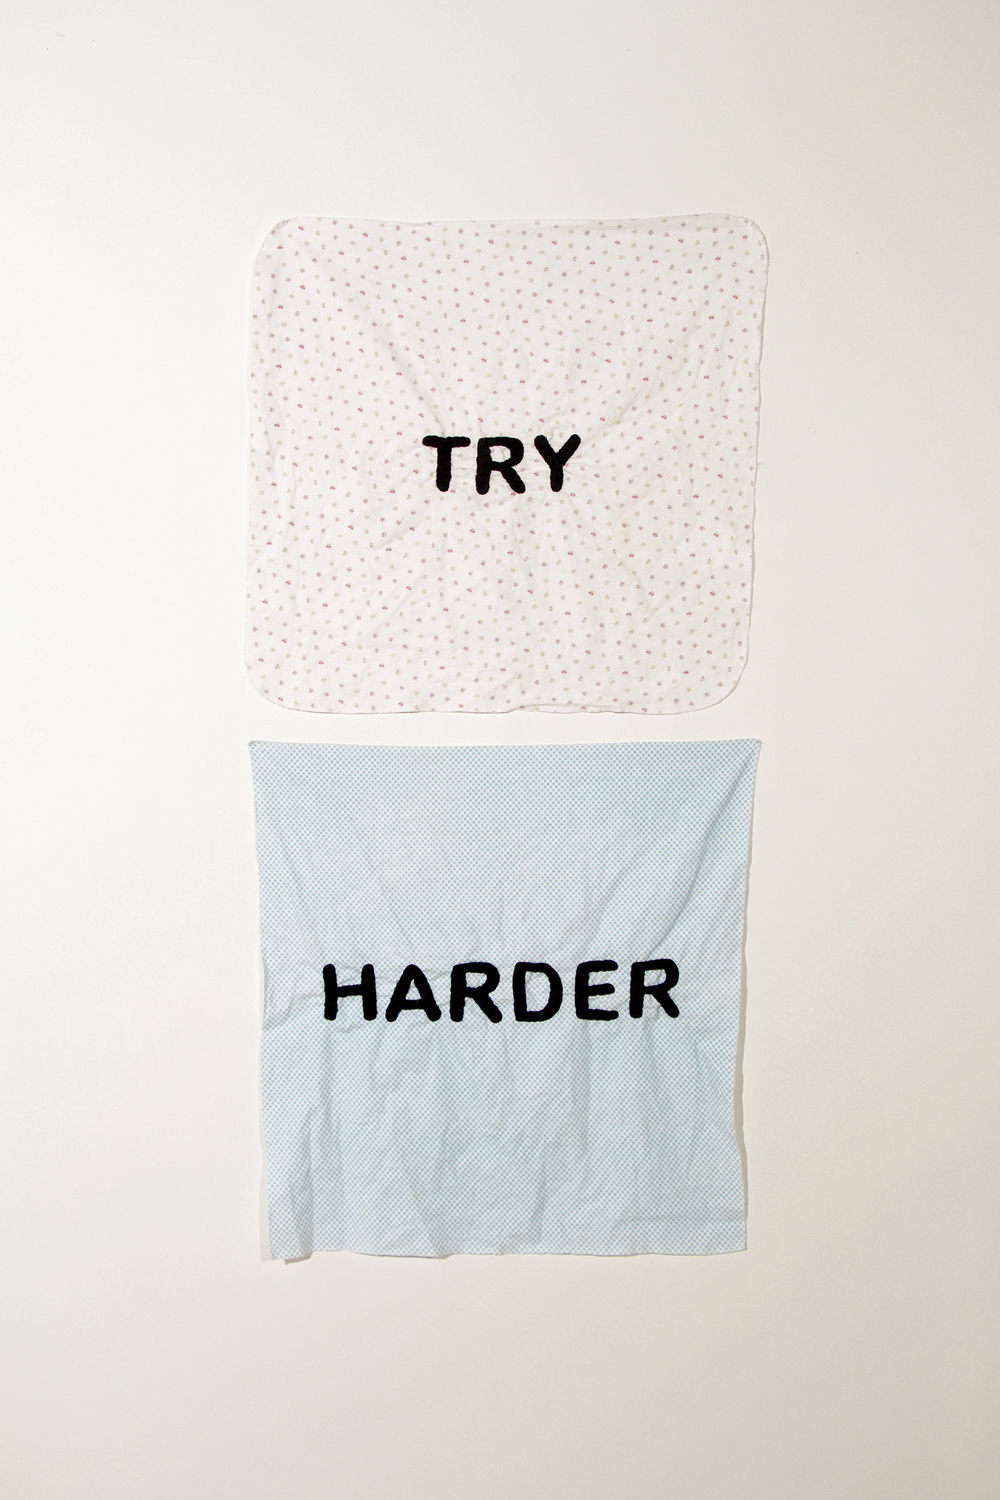 Embroidery: Try Harder -  2010 to present Try Harder